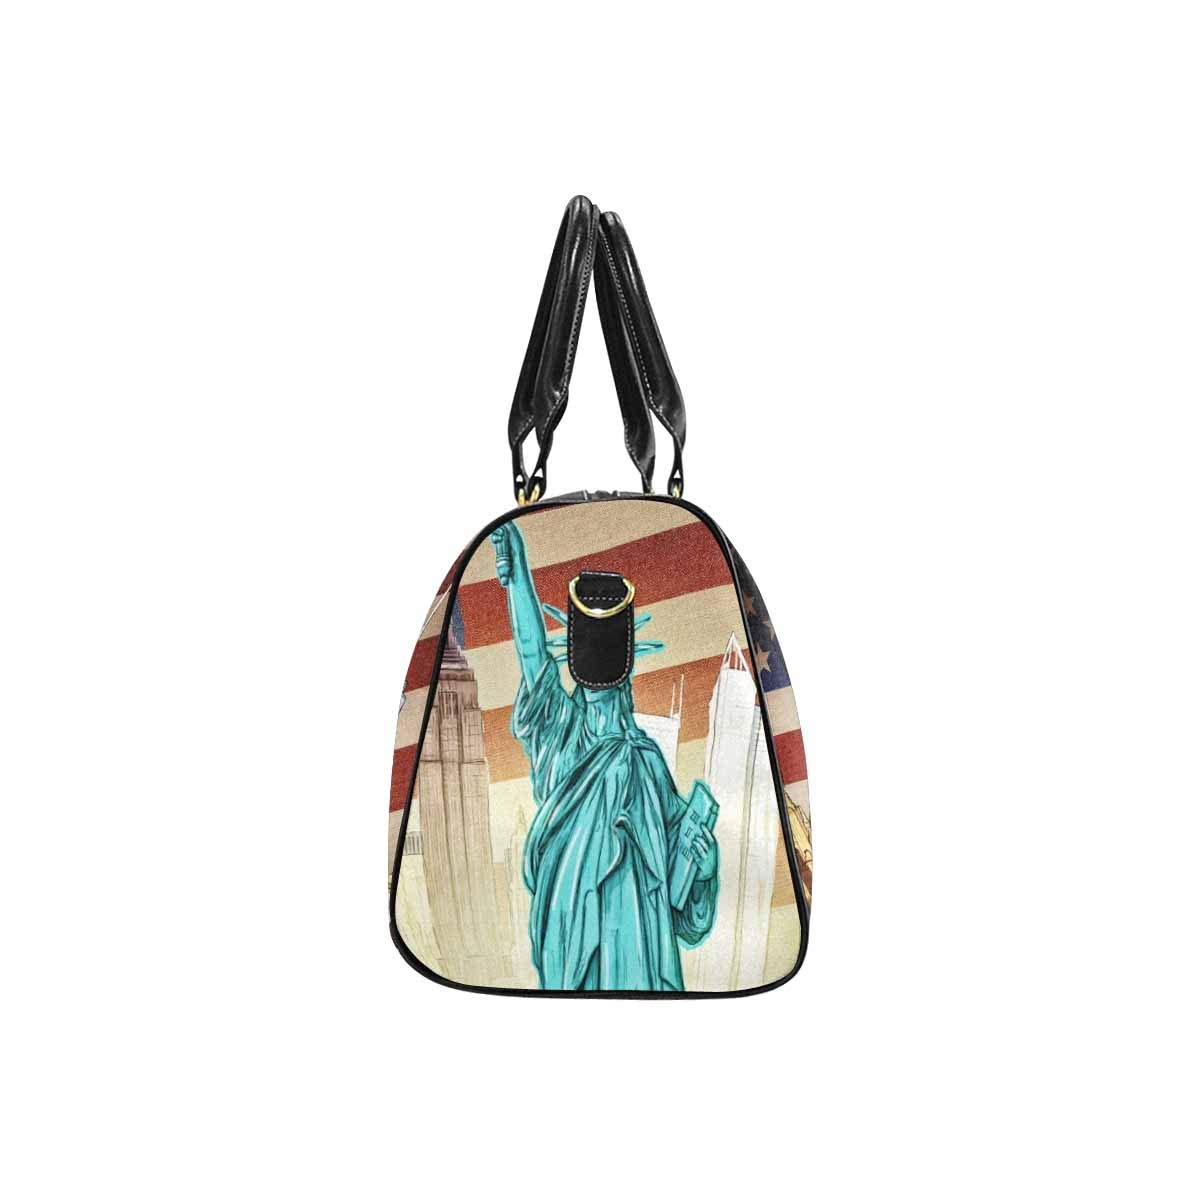 InterestPrint Waterproof Travel Bag Sports Duffel Tote Overnight Bag Statue of Liberty